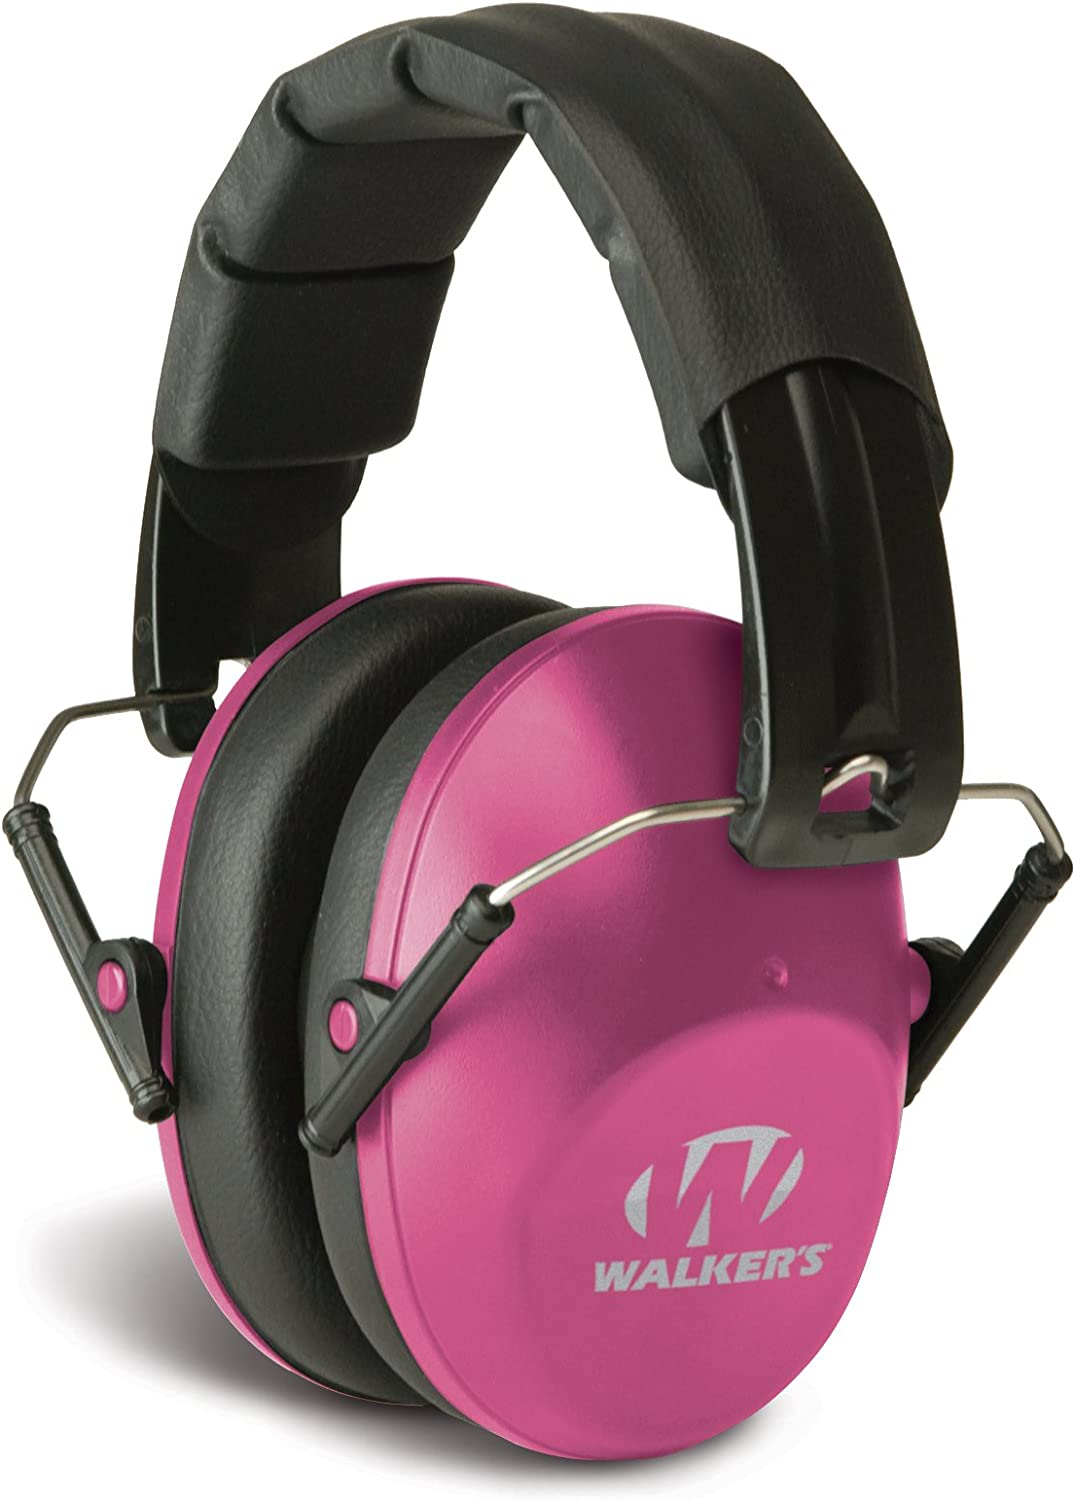 Walker's Low Profile Folding Muff (Pink) : Clothing